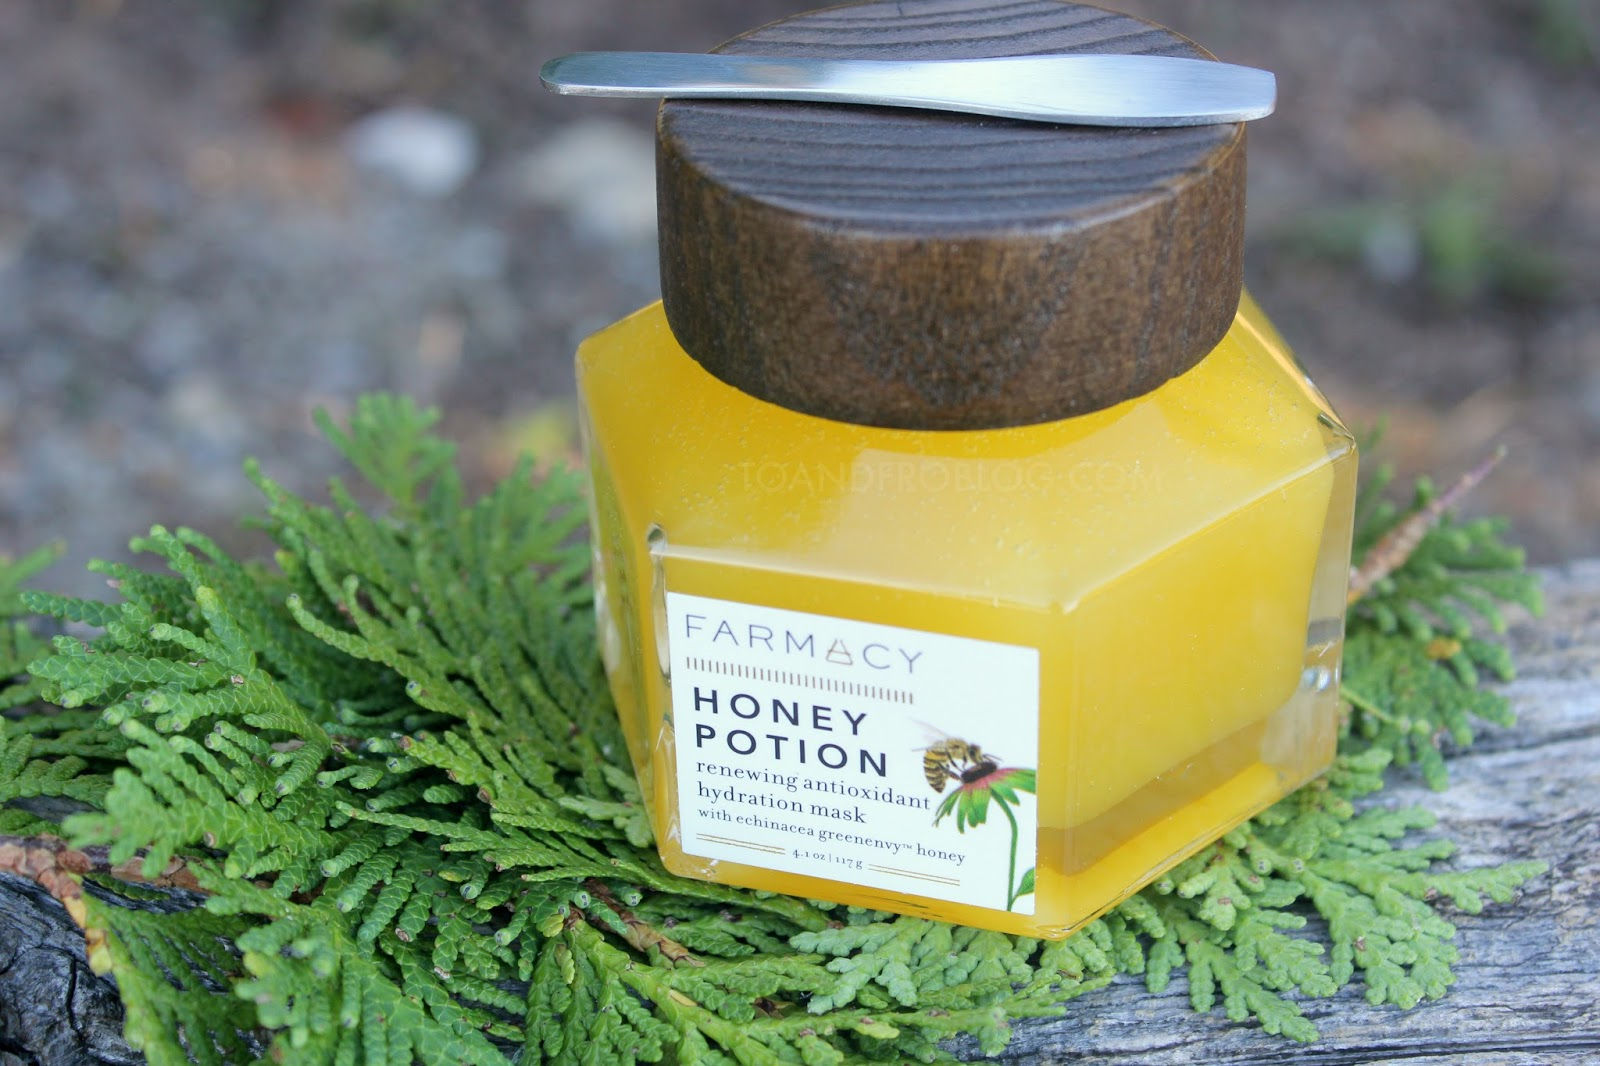 Farmacy Beauty's Honey Potion Review